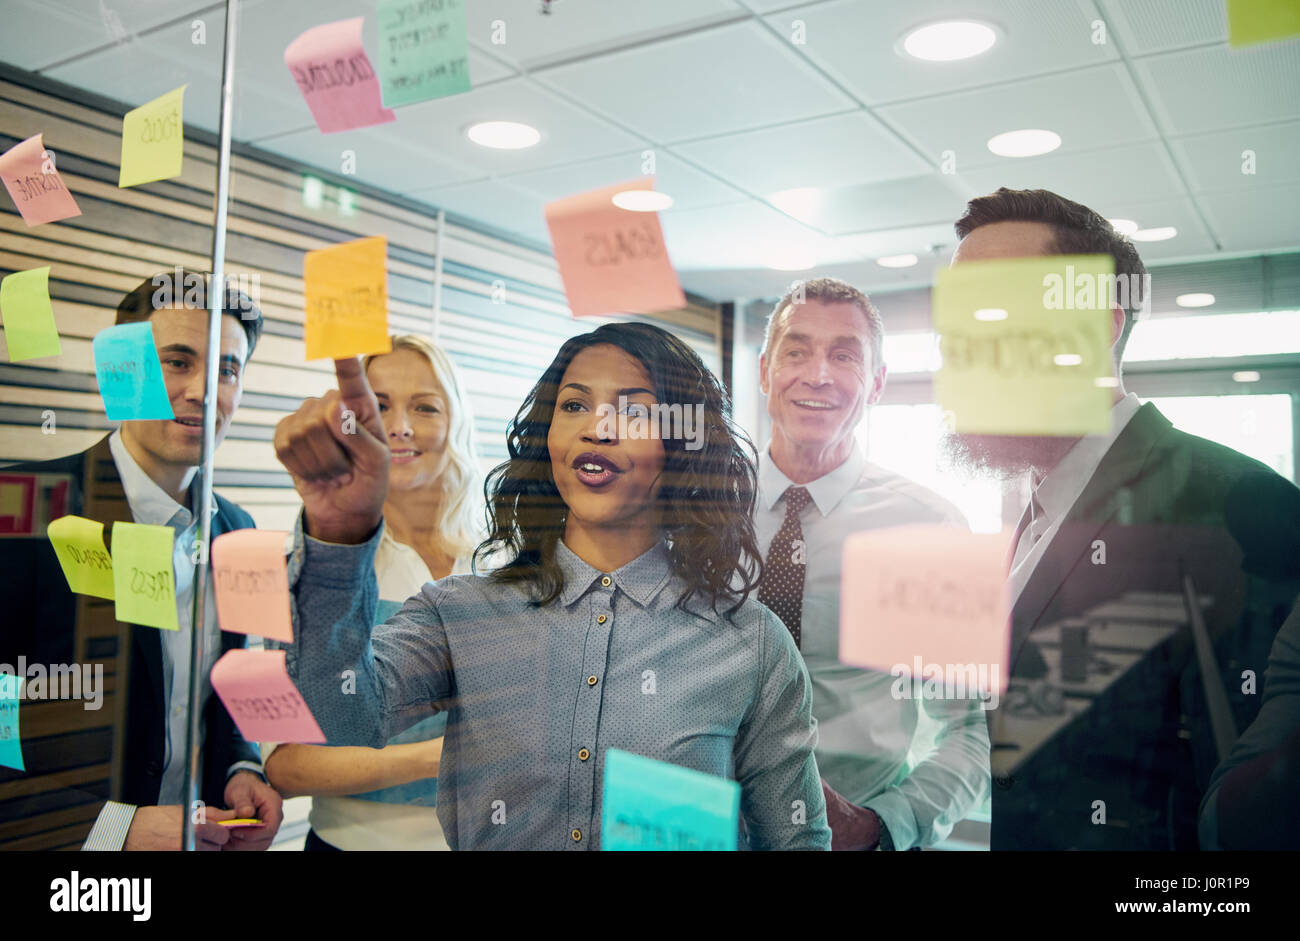 Business people in office cooperating at the wall with the stickers. Mixed team of entrepreneurs - Stock Image